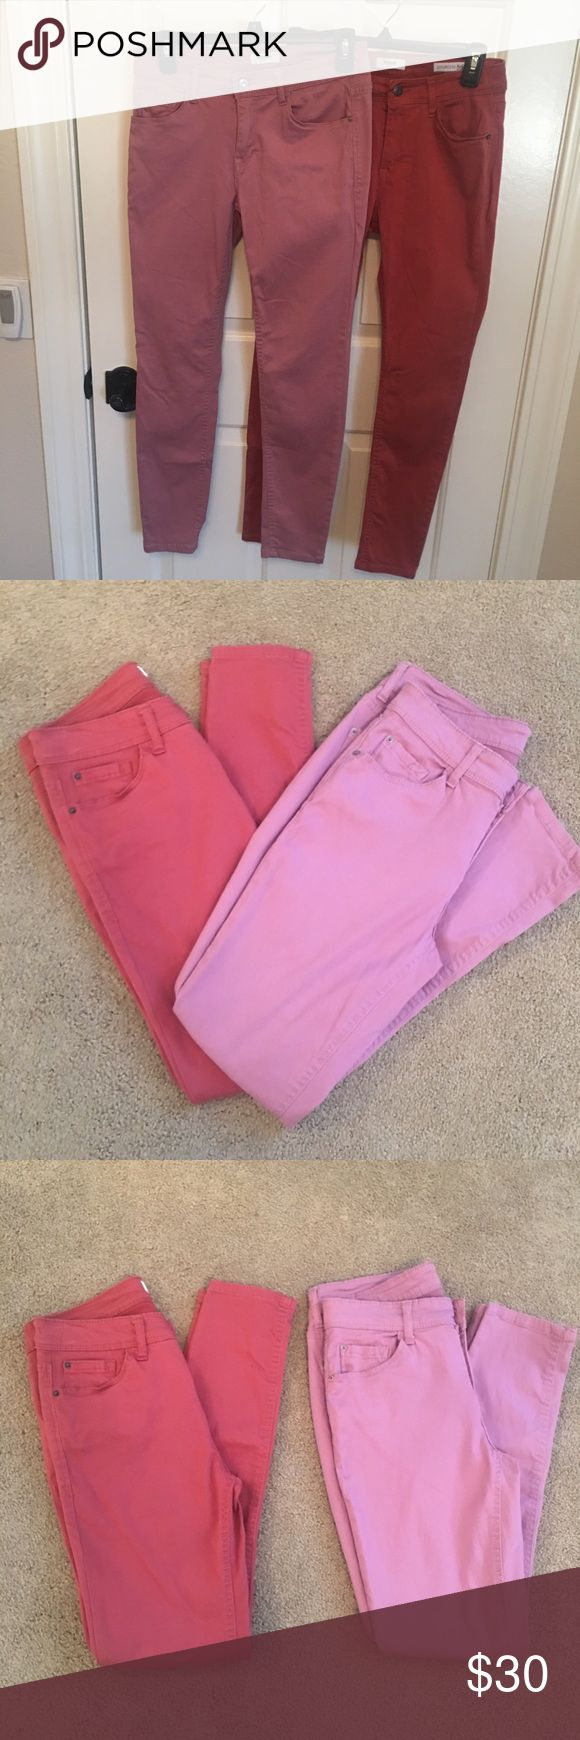 2 pair of Kensie jeans 👖👖 Two pair of Kensie jeans. One pink one deep orange color. Ankle mid rise jeans. The pink pair has been worn once had a small spot on pocket (see pictures for spot). I bought the wrong size and took off tags before I could return. Just too big on me that's why I am selling. Kensie Jeans